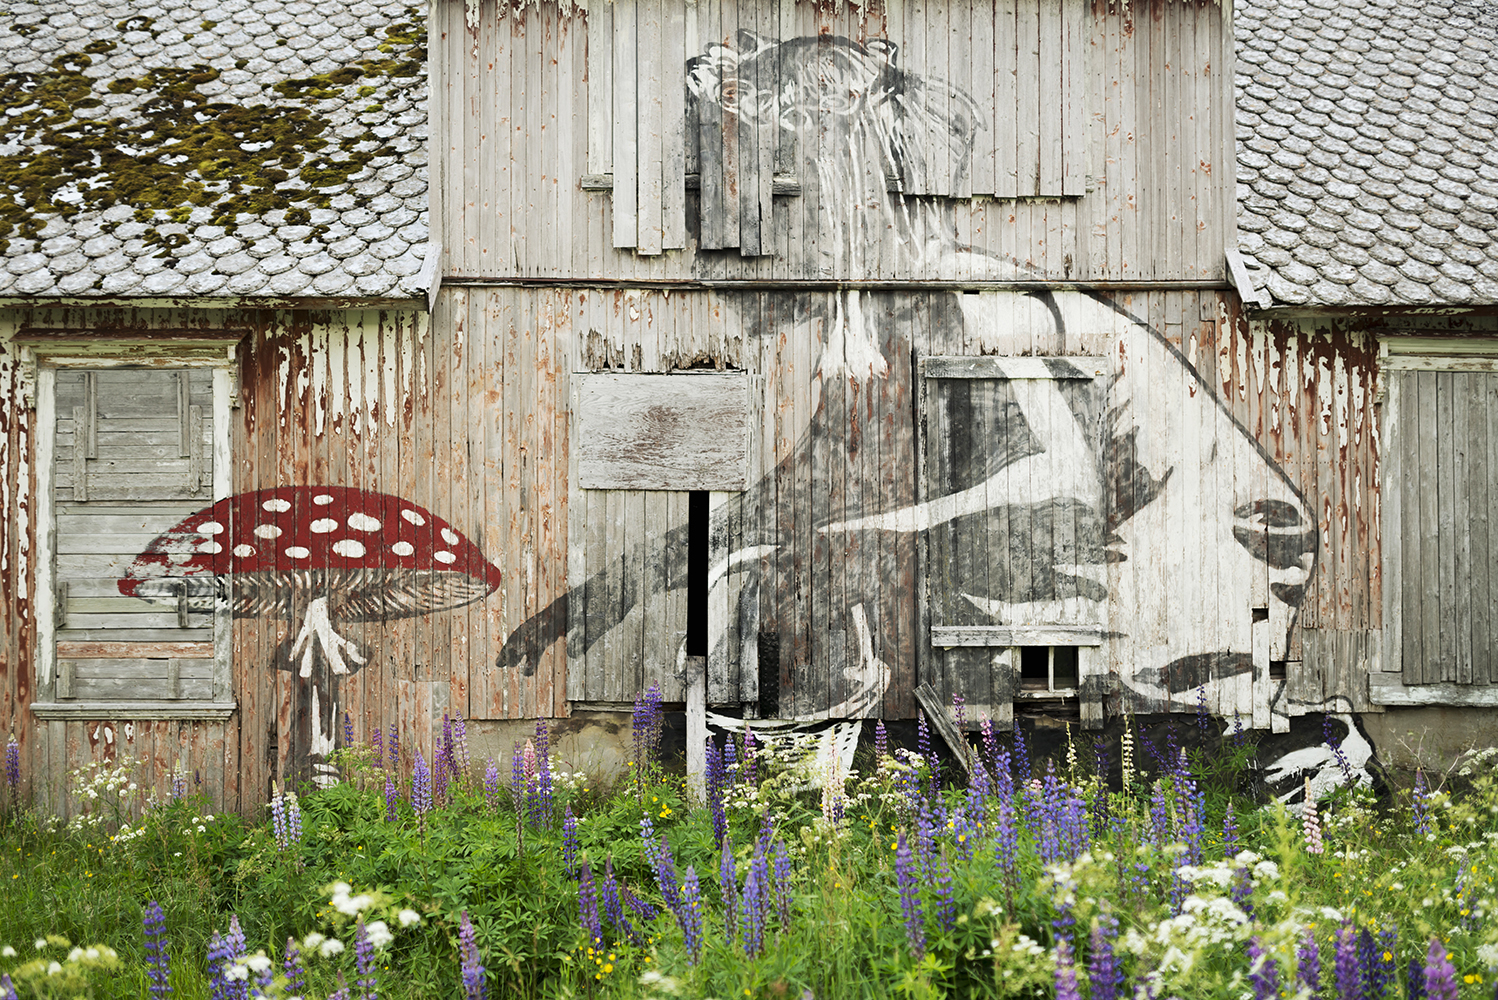 Streetart on Lofoten Islands by graffiti artists Dolk and Pobel